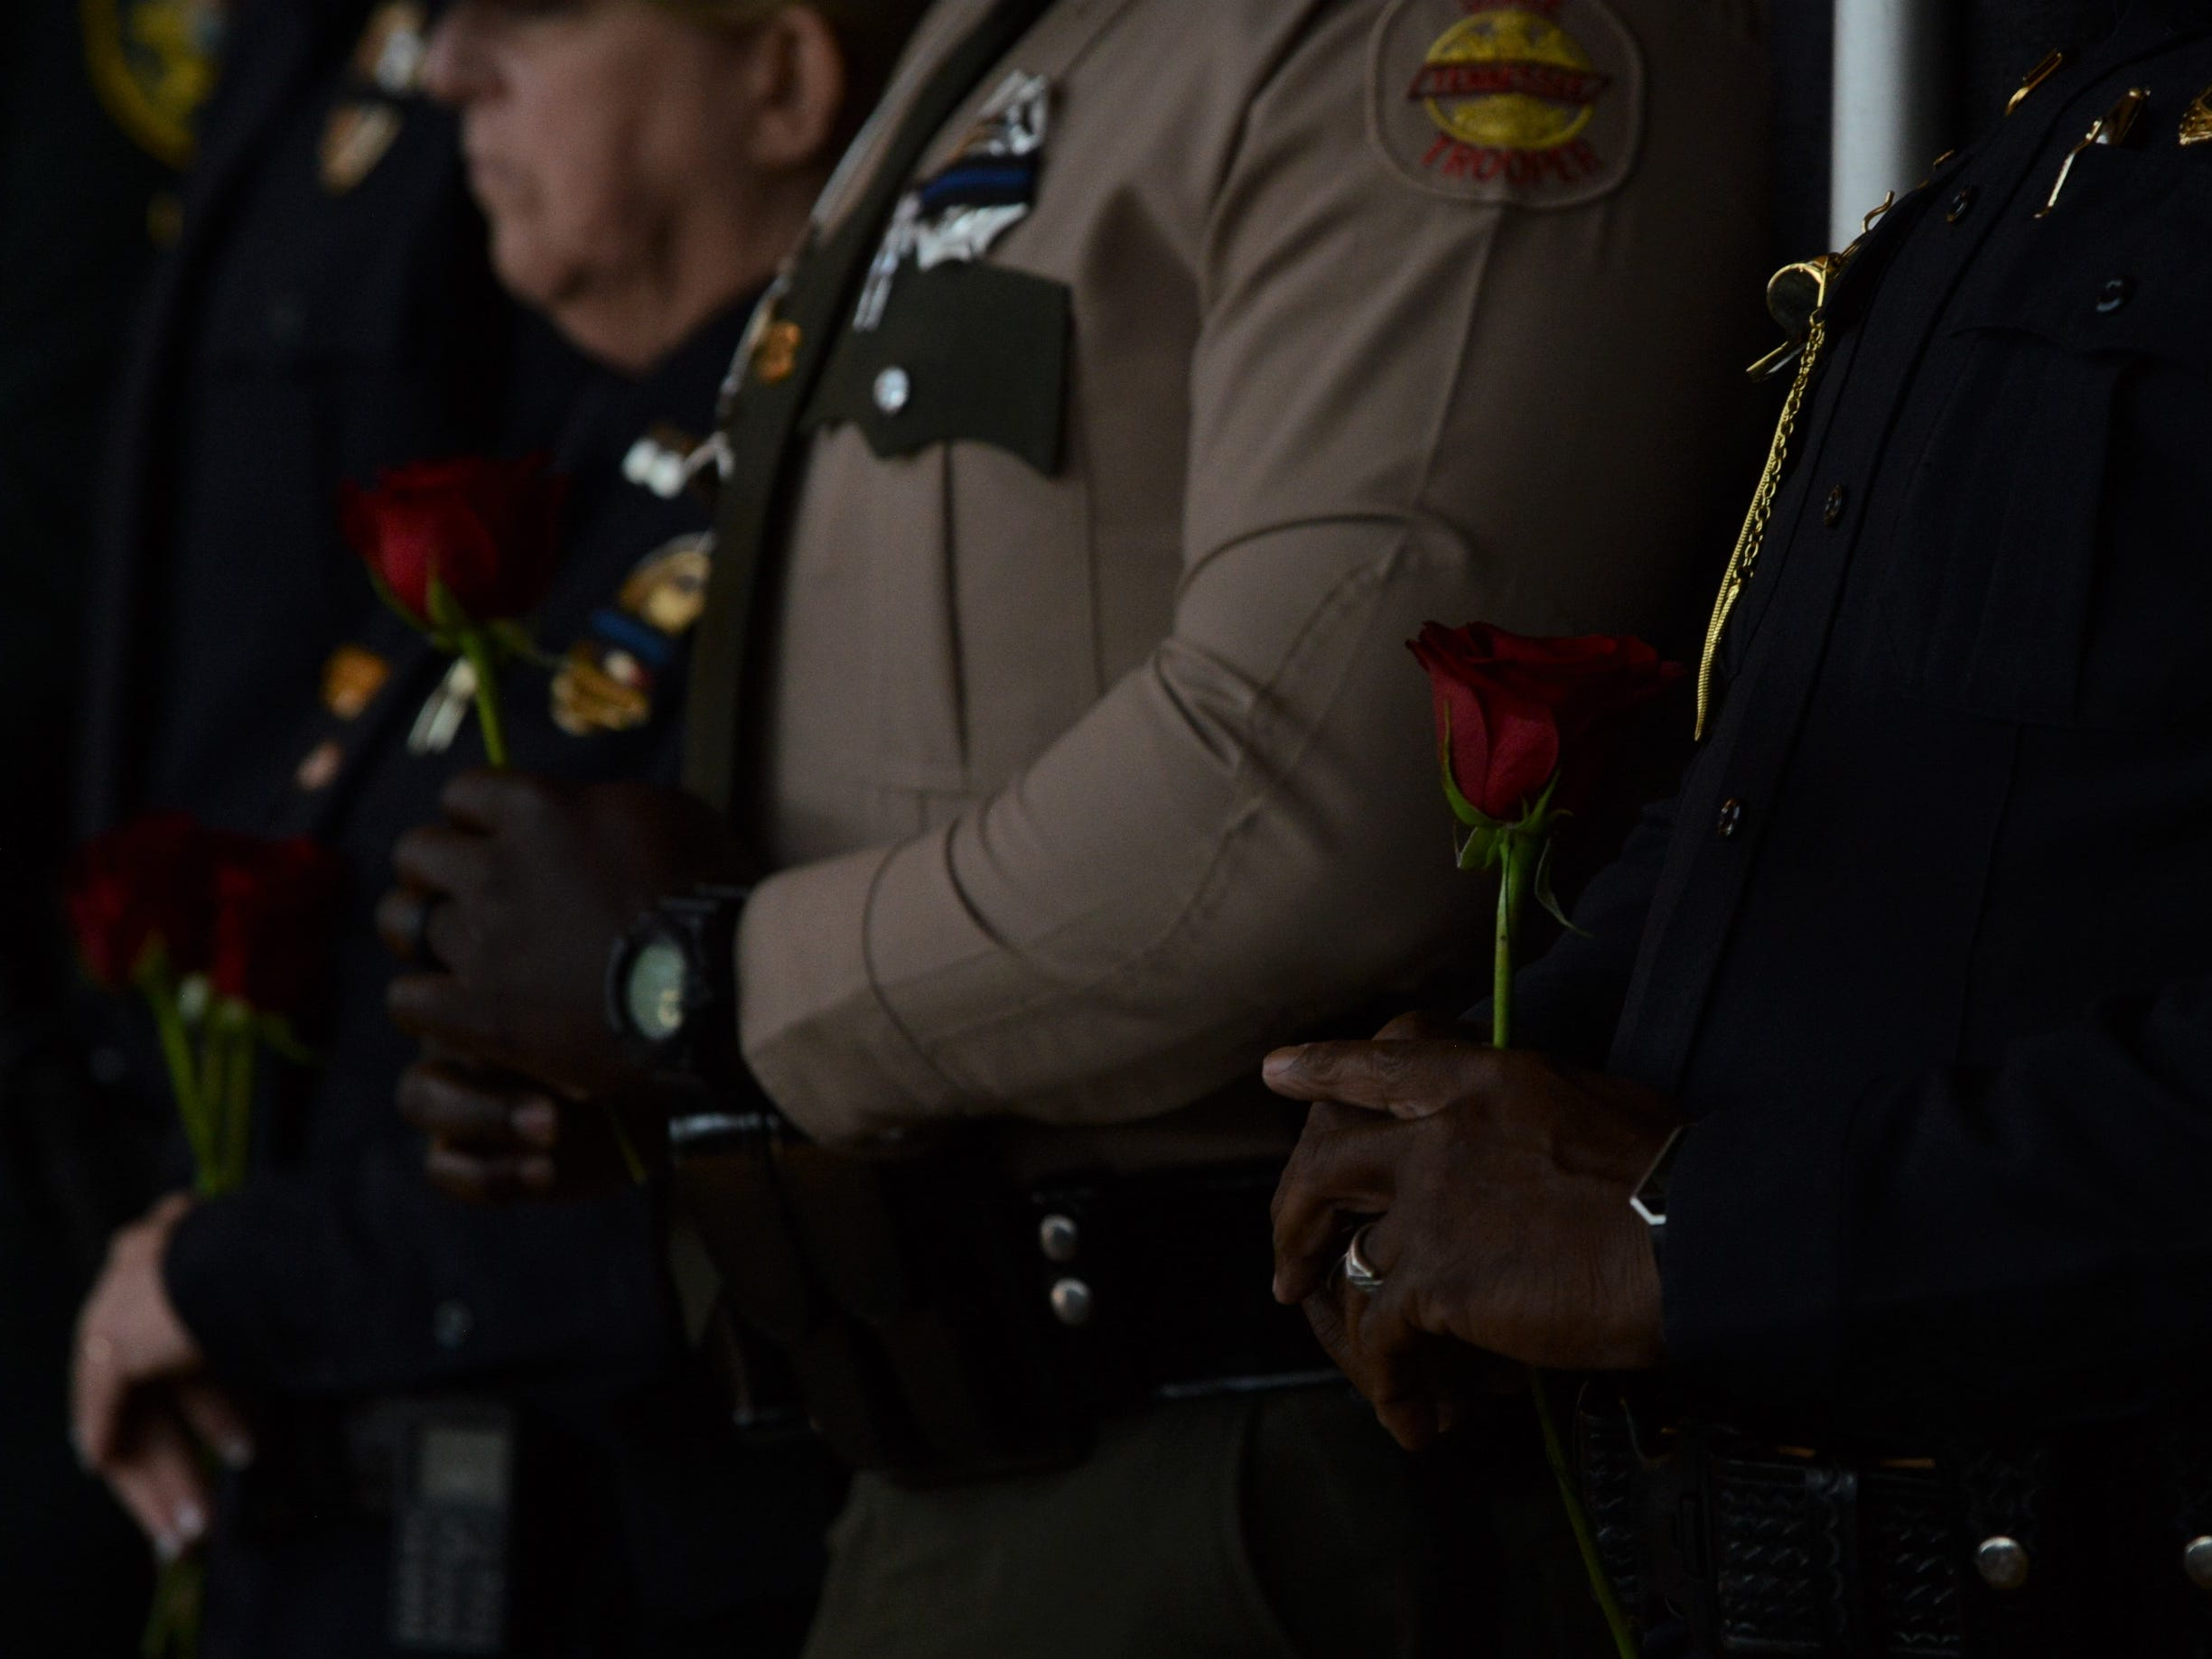 Law enforcement officers from throughout West Tennessee hold roses for their fallen brothers and sisters in blue at the Carl Perkins Civic Center in Jackson during the National Law Enforcement Memorial Service on Wednesday, May 15, 2019.